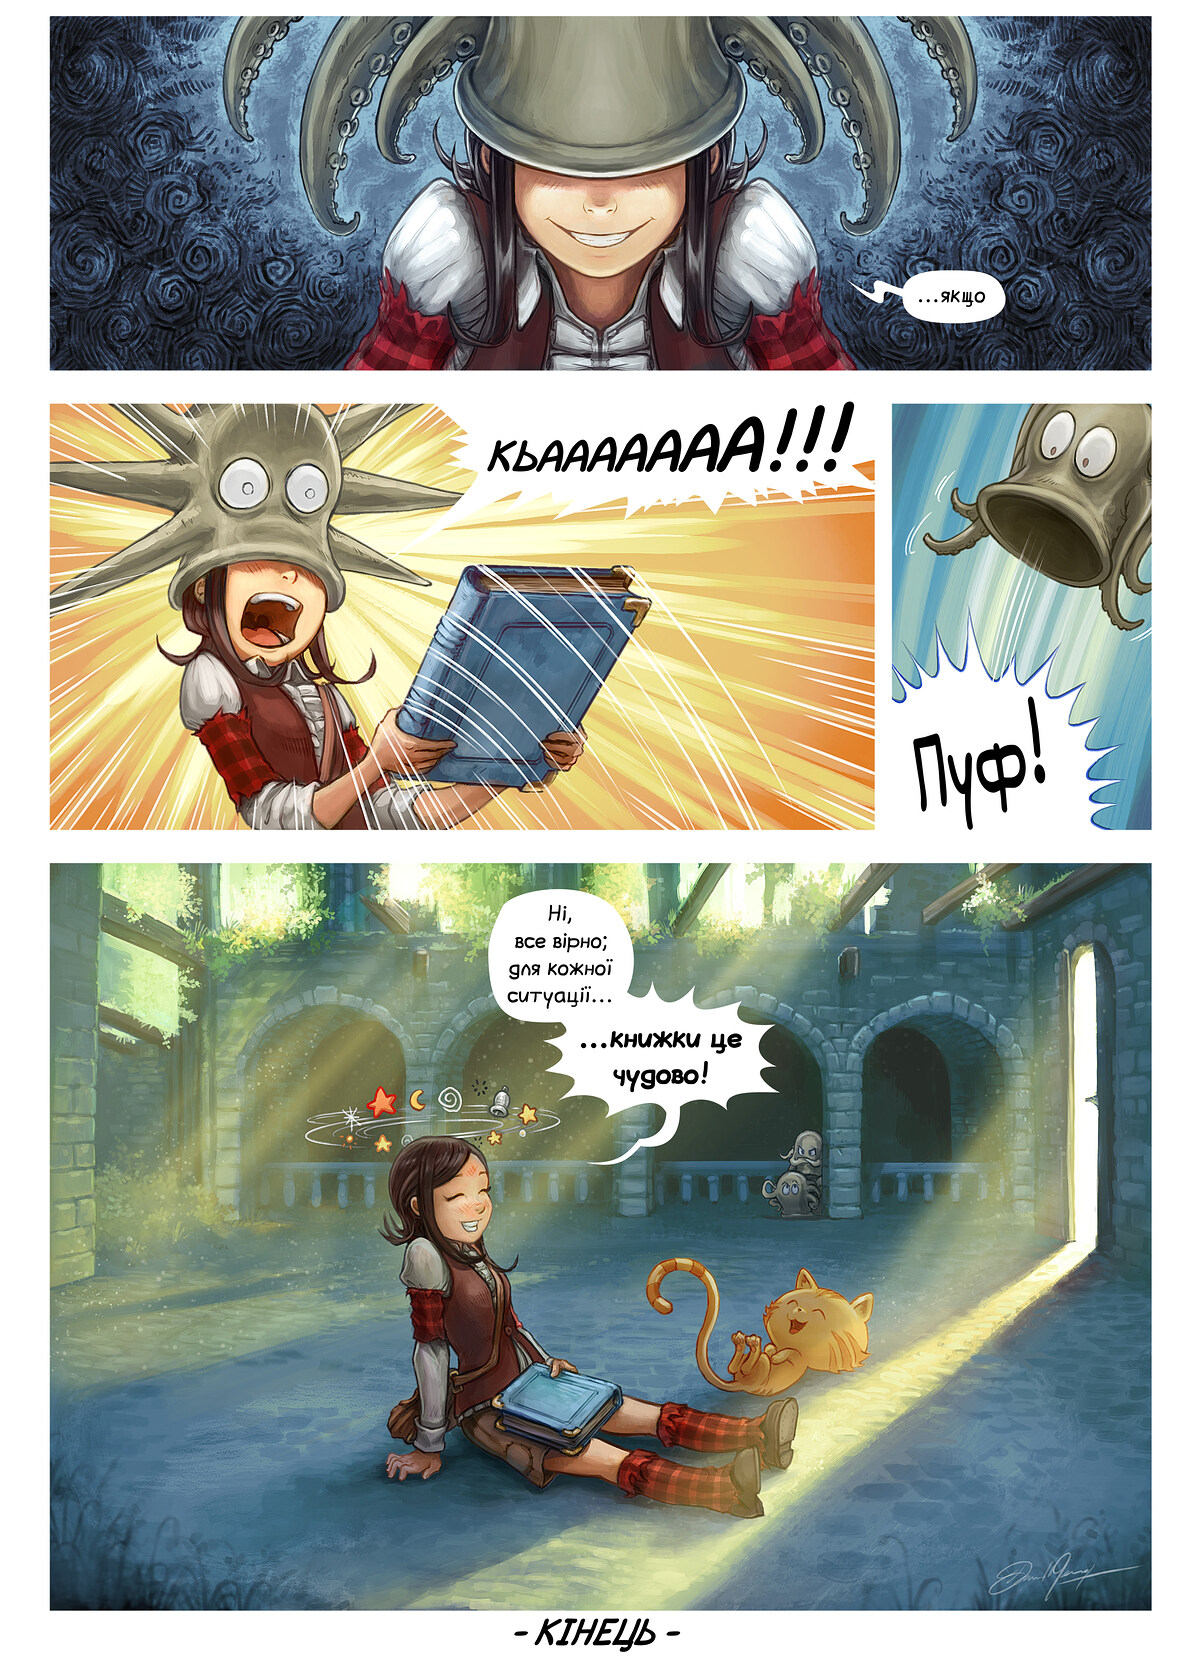 A webcomic page of Pepper&Carrot, епізод 26 [uk], стор. 6